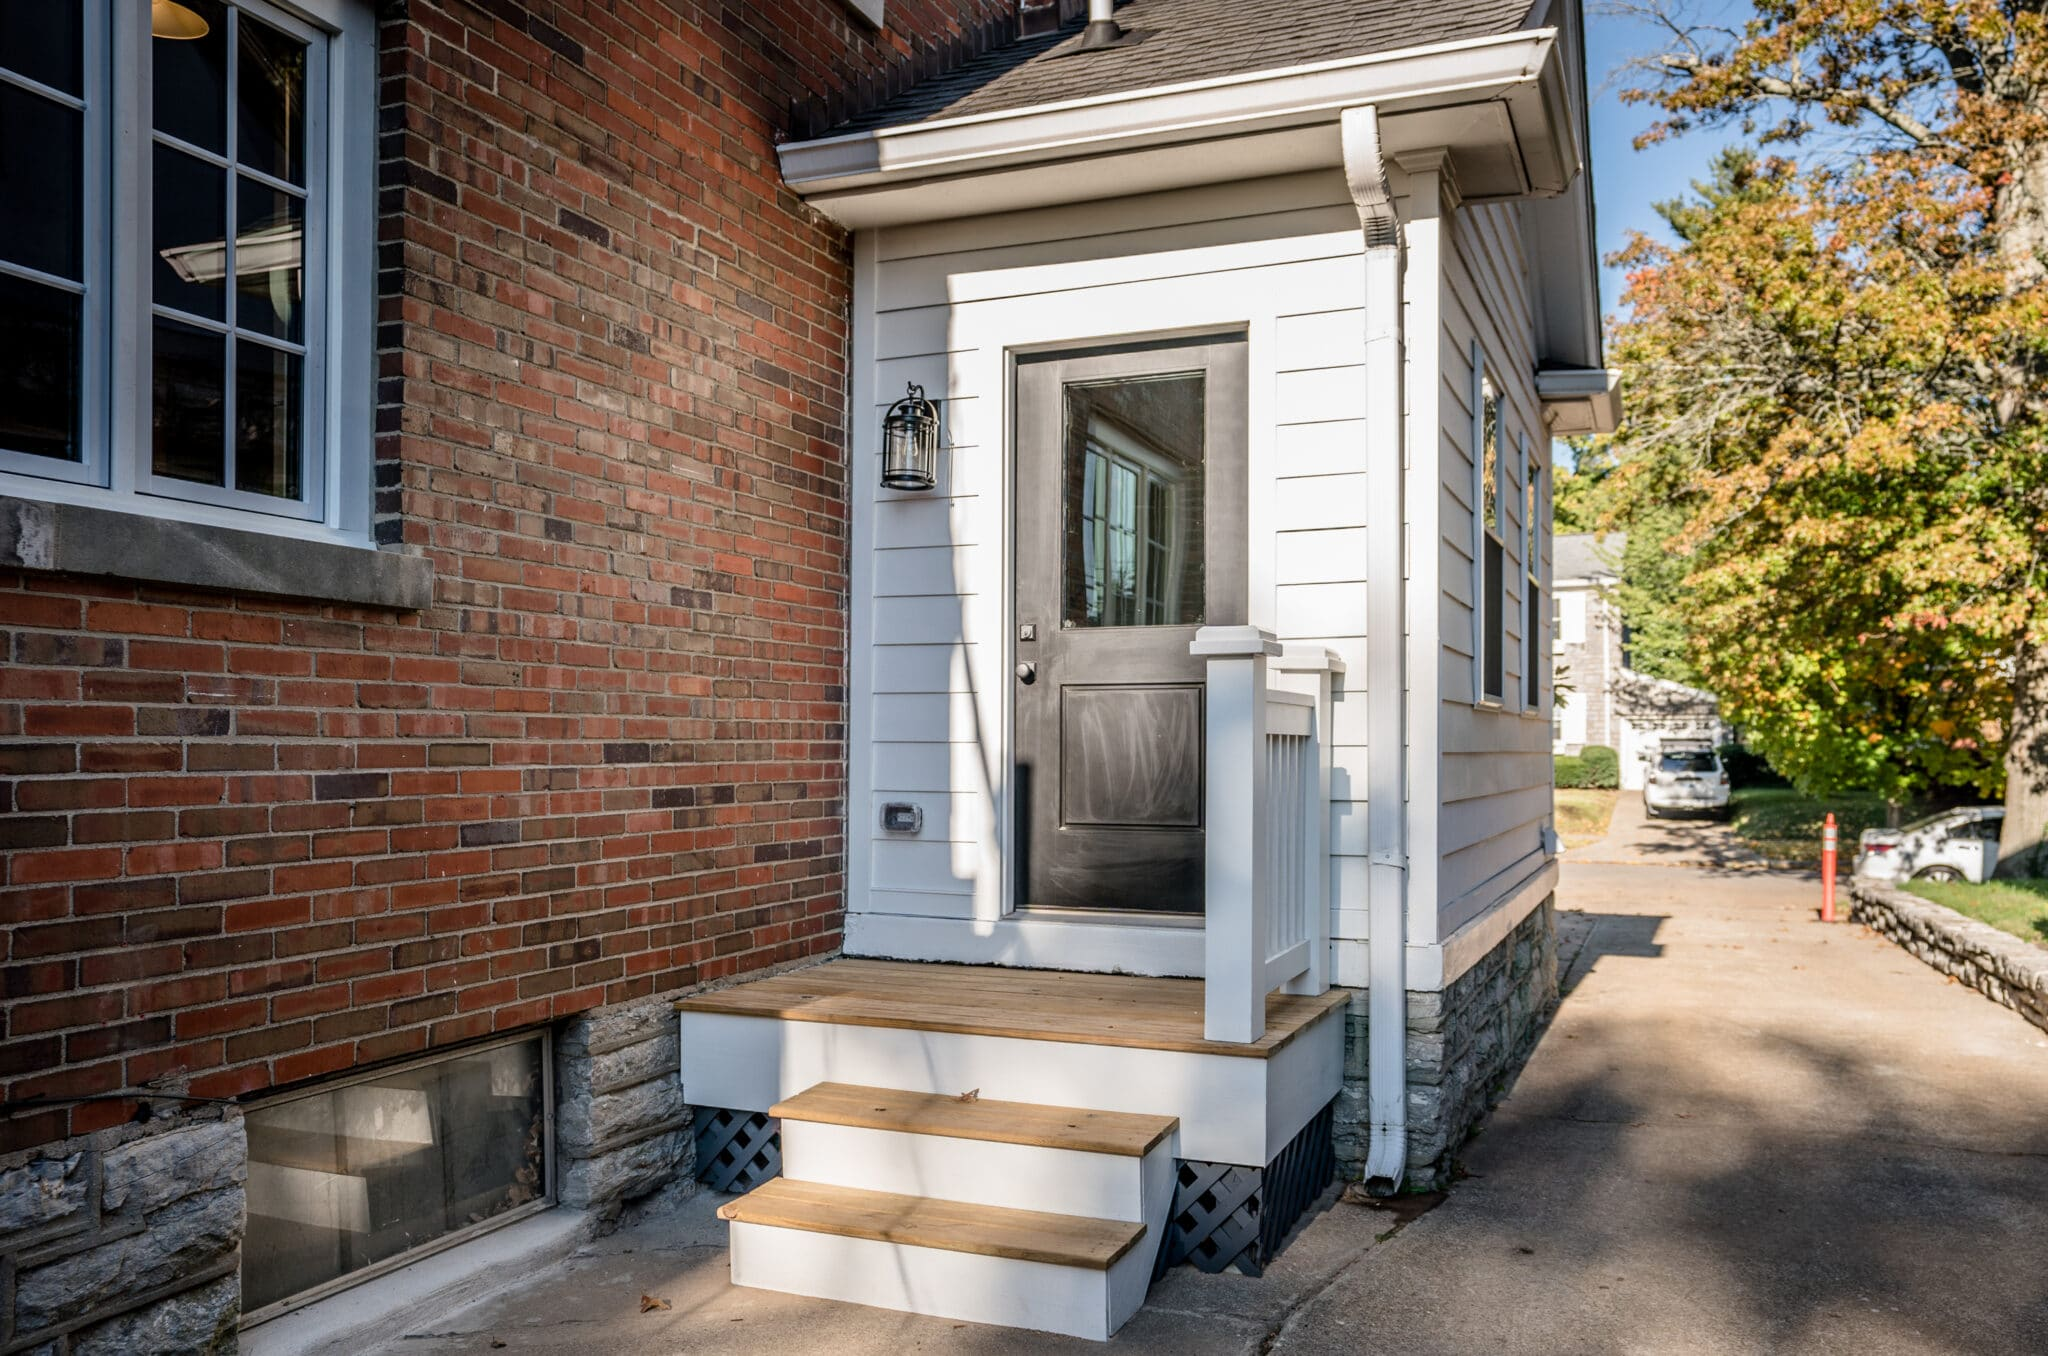 320 Dudley for Greystone, Monday Oct. 5, 2020  in Lexington, Ky. Photo by Mark Mahan